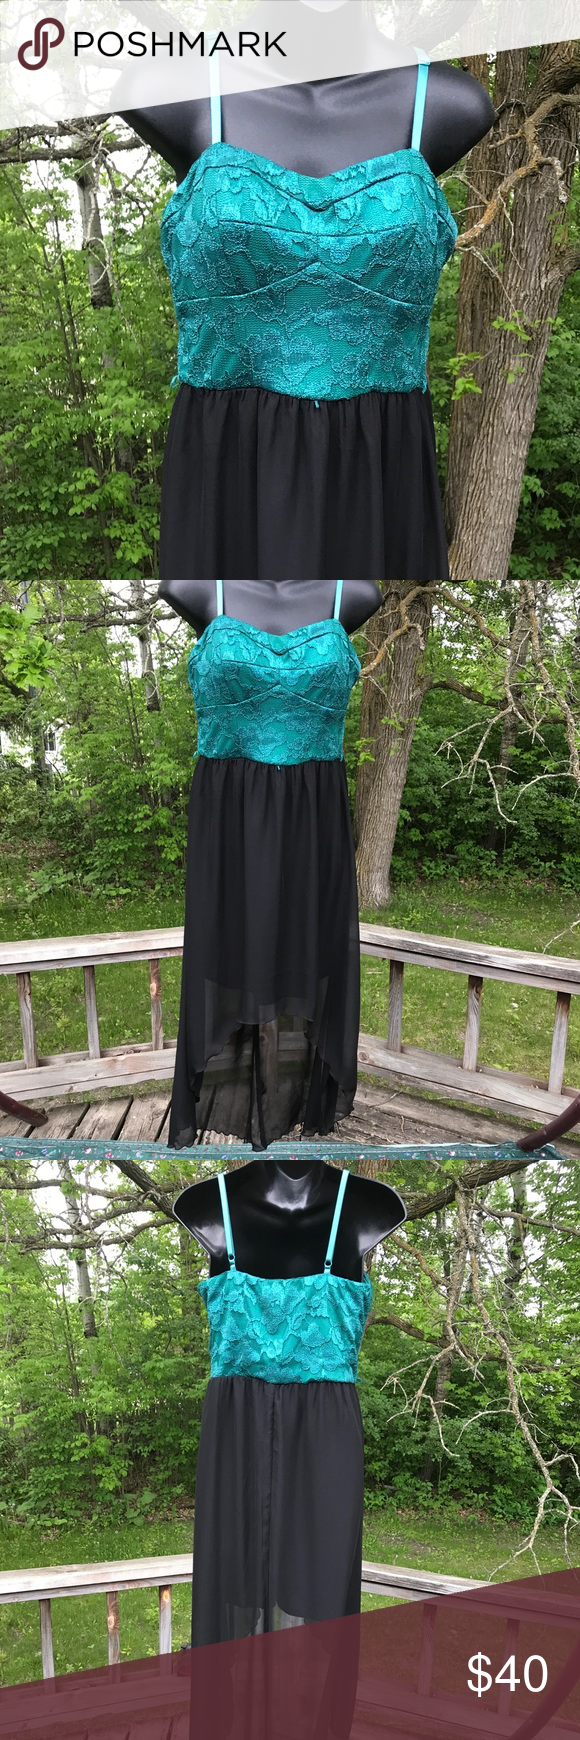 Hi-Lo Prom Dress Green and black hi-lo prom or formal dress. Spaghetti straps, Lily Rose, size L. #black #green #emerald #cute #hilo #prom #classy #formal #dress Lily Rose Dresses High Low